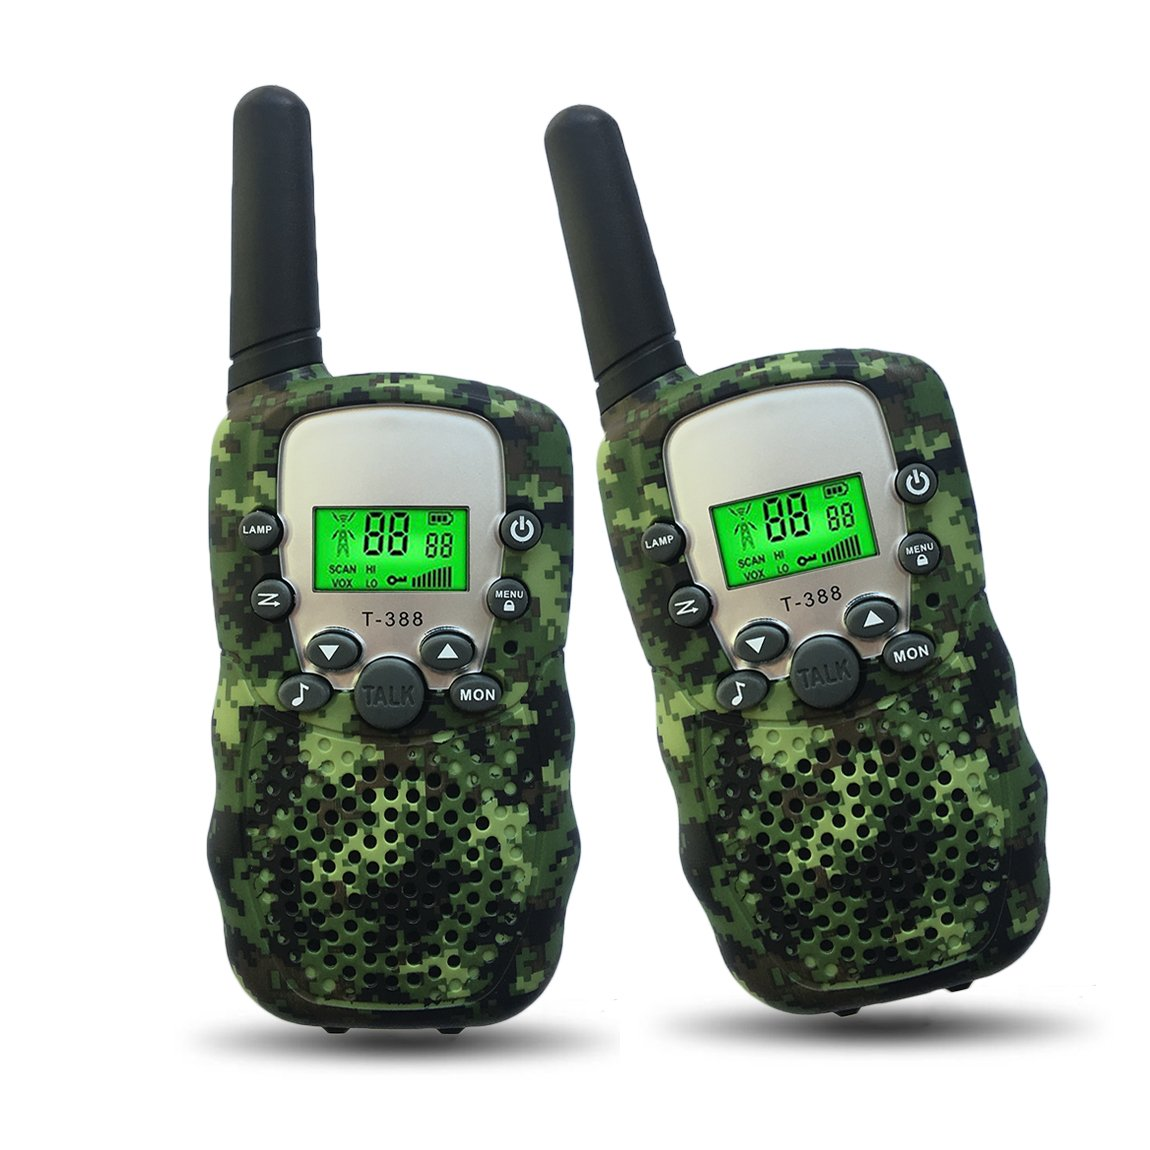 Outdoor Toys for Kids 5-10 Year Old Joyfun Walkie Talkies for Kids Boys Long Distance Teens Hiking Children's Gifts for Boys 6, 7, 8+ Year Old Camo - 1 Pair